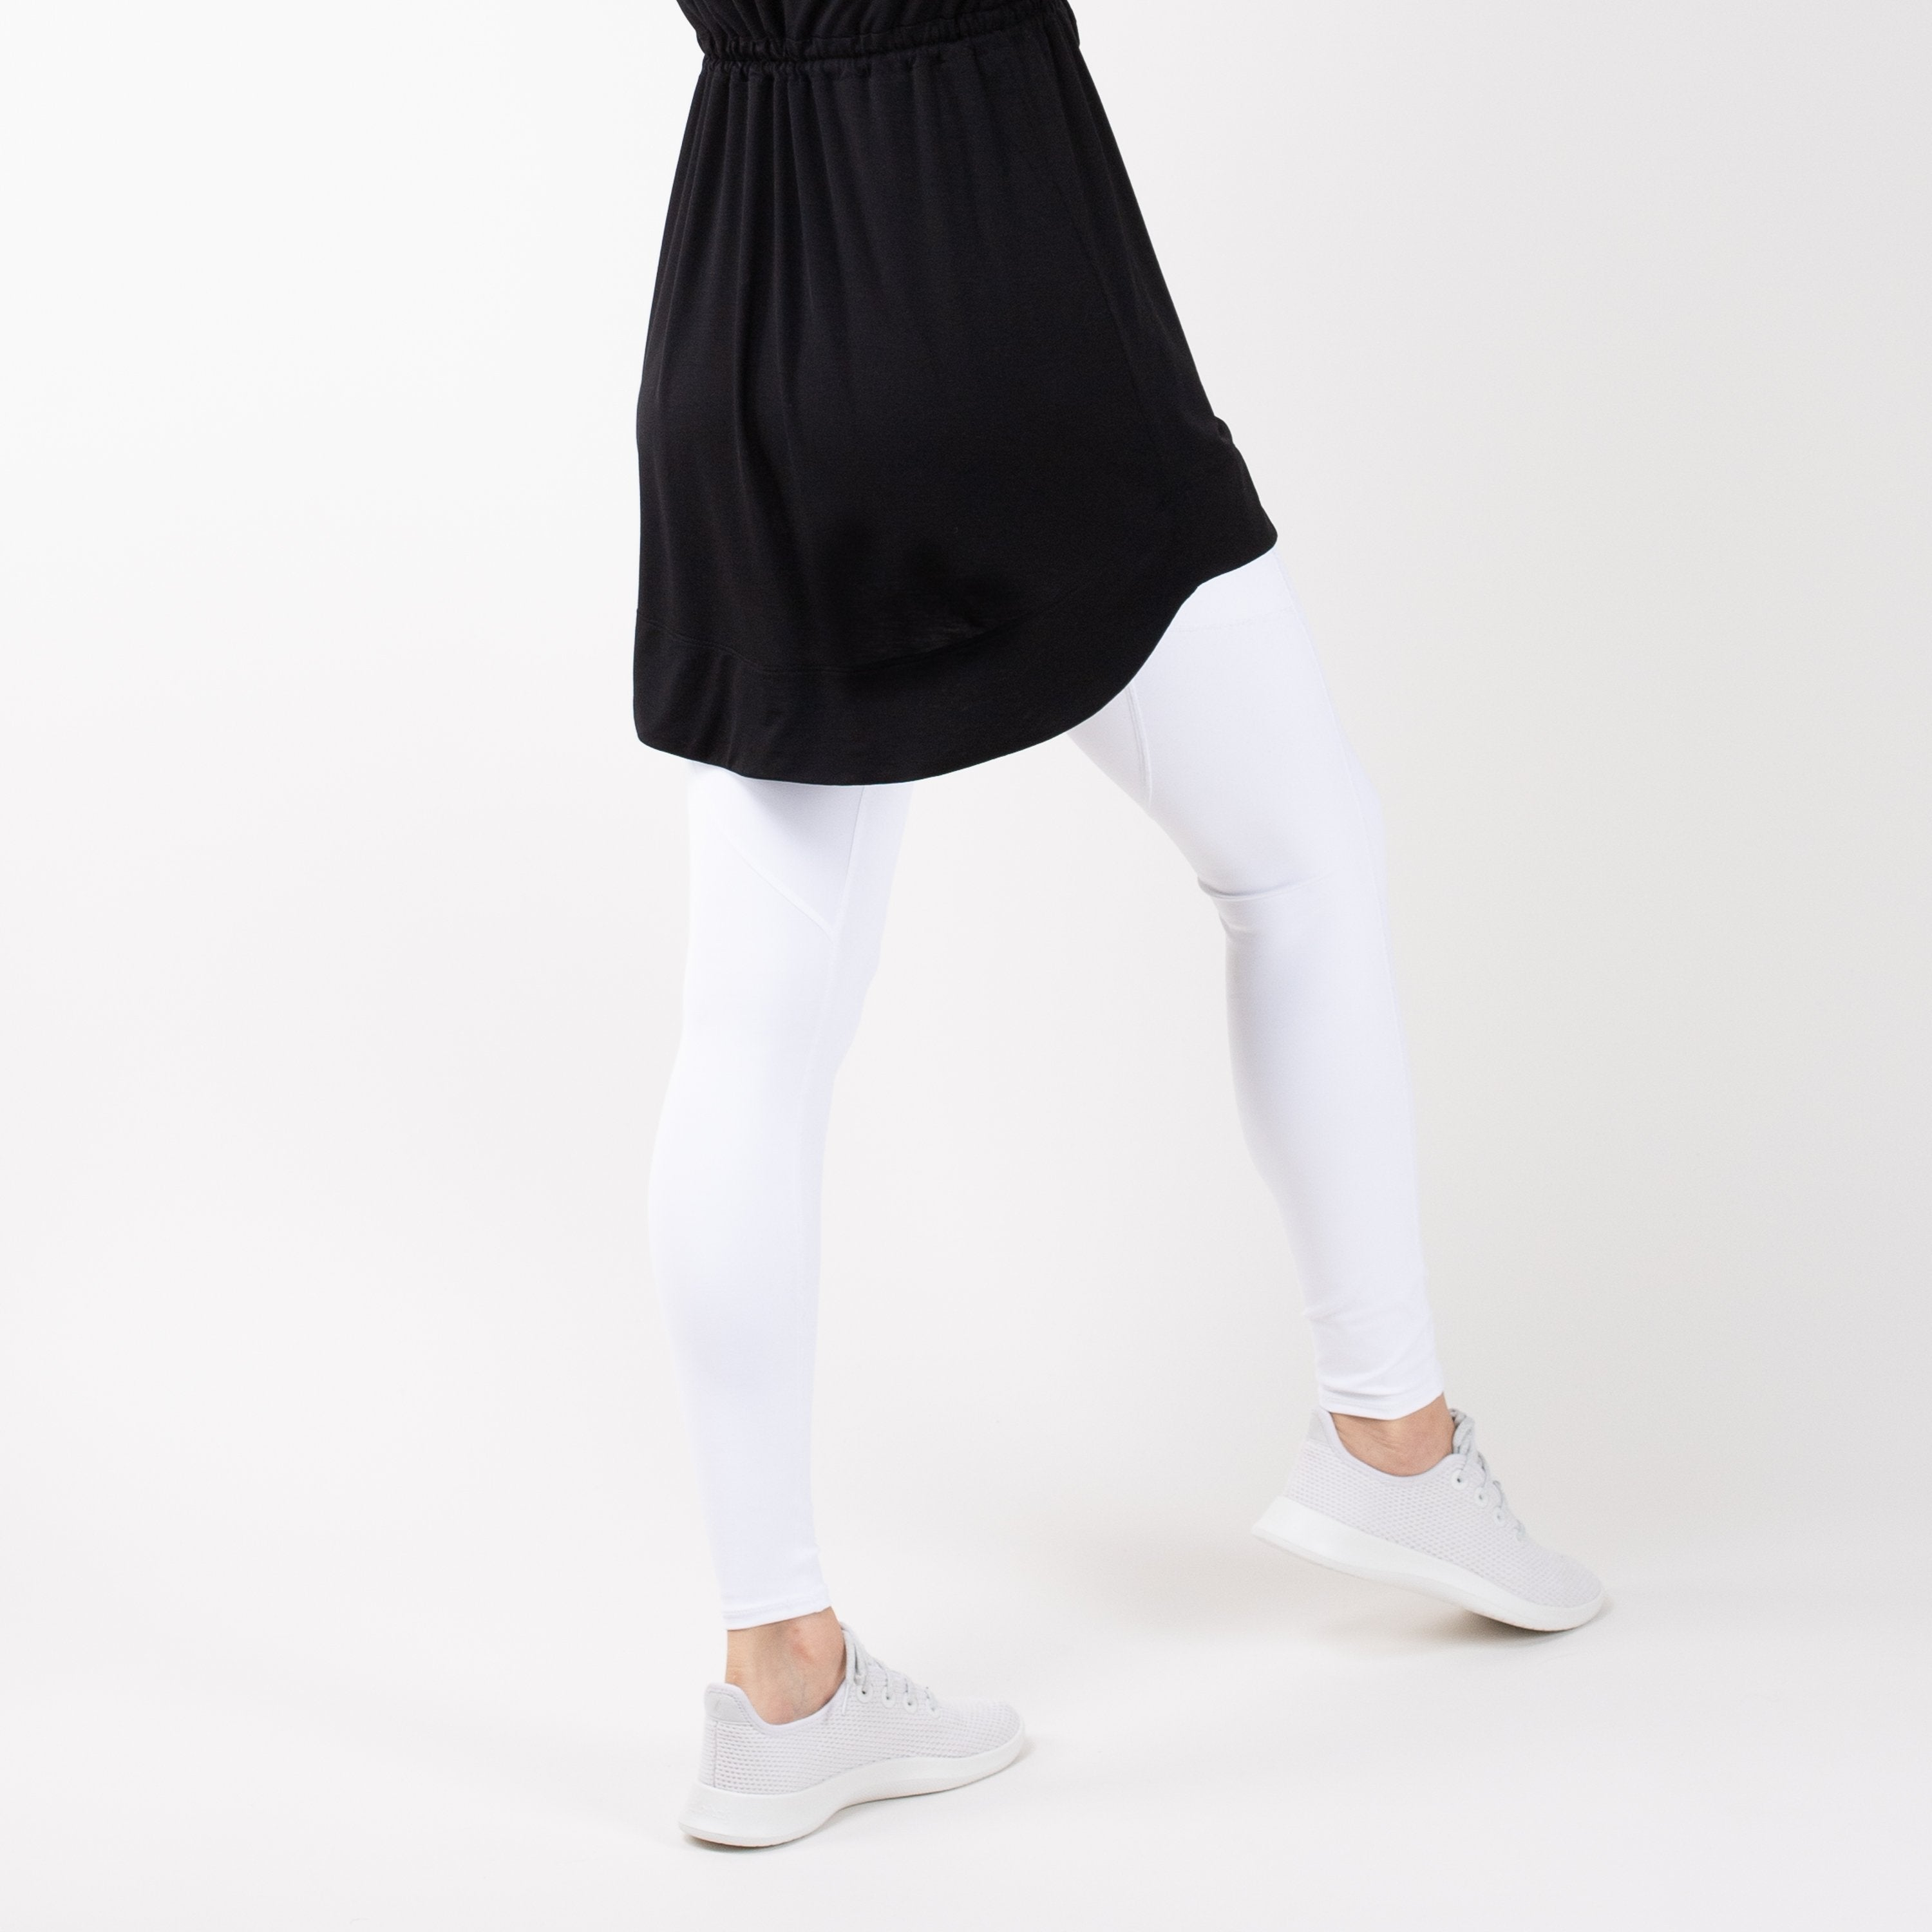 Detail shot of lower-half of a woman in modest, black HAWA drawstring tee shirt and white leggings in front of a white backdrop.